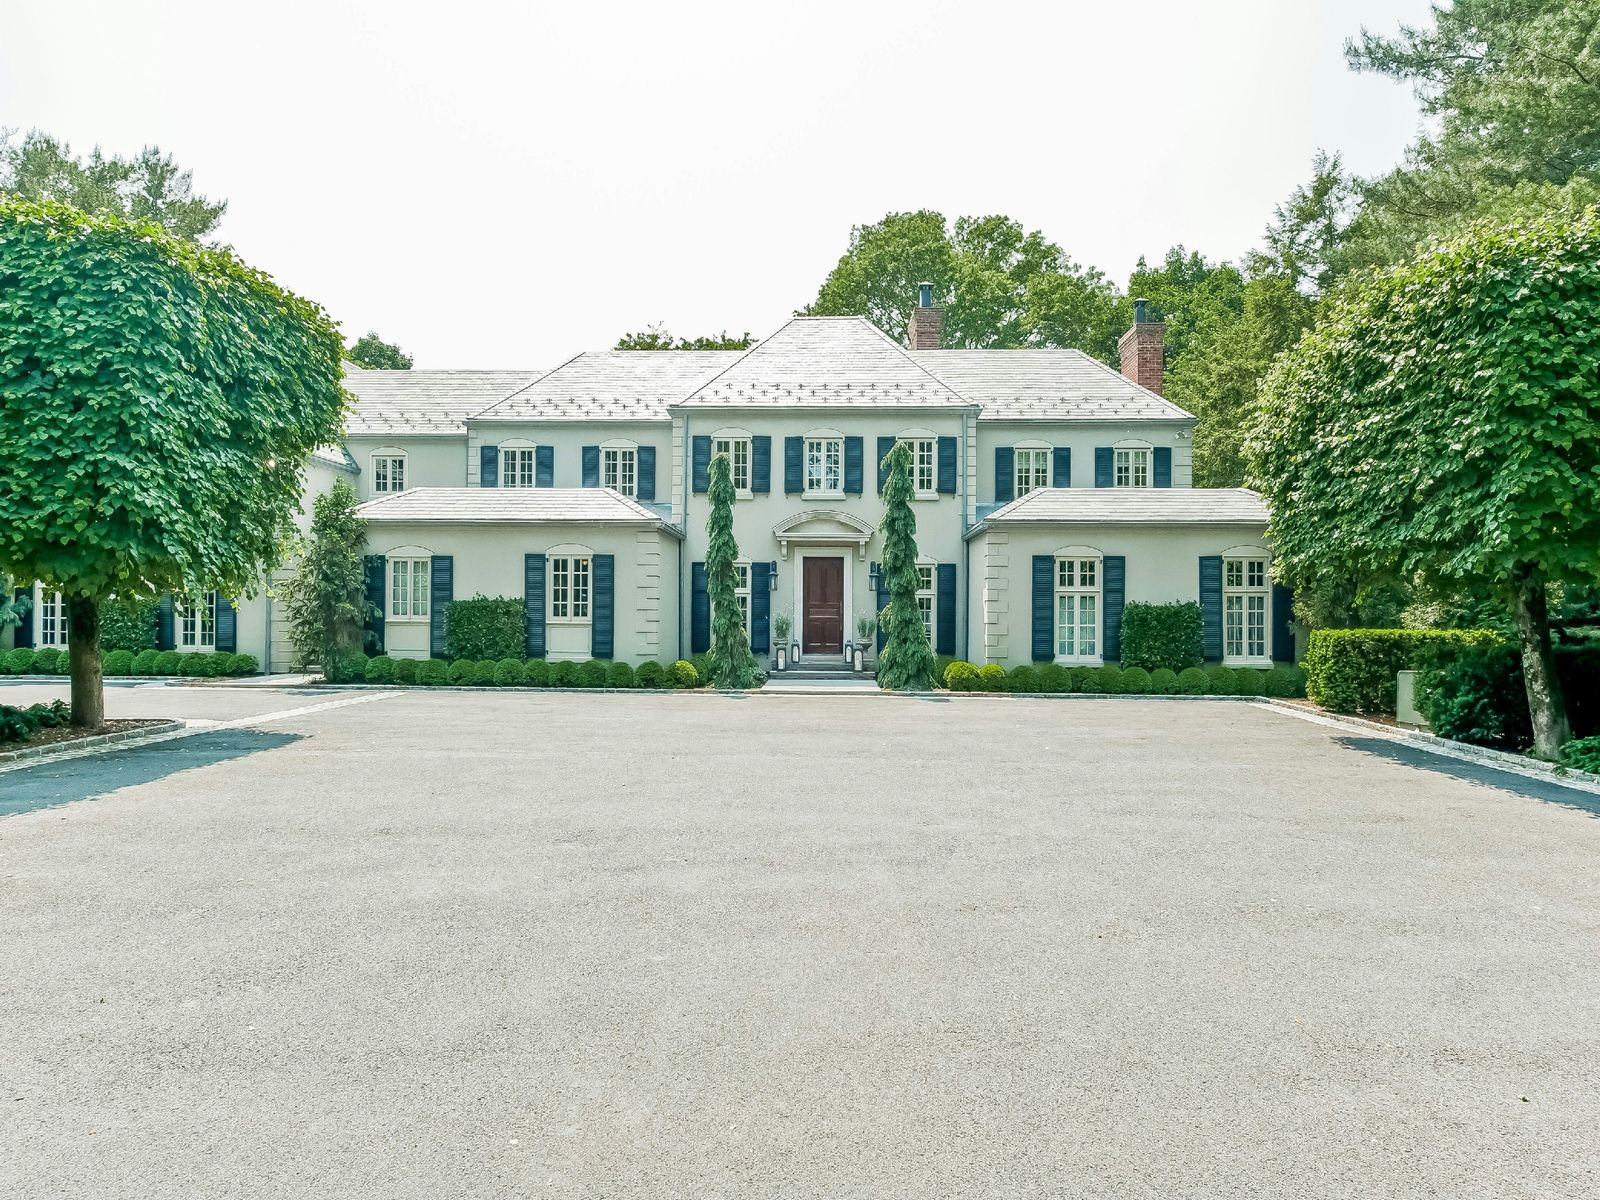 Exquisite on Round Hill, Greenwich CT Single Family Home - Greenwich Real Estate